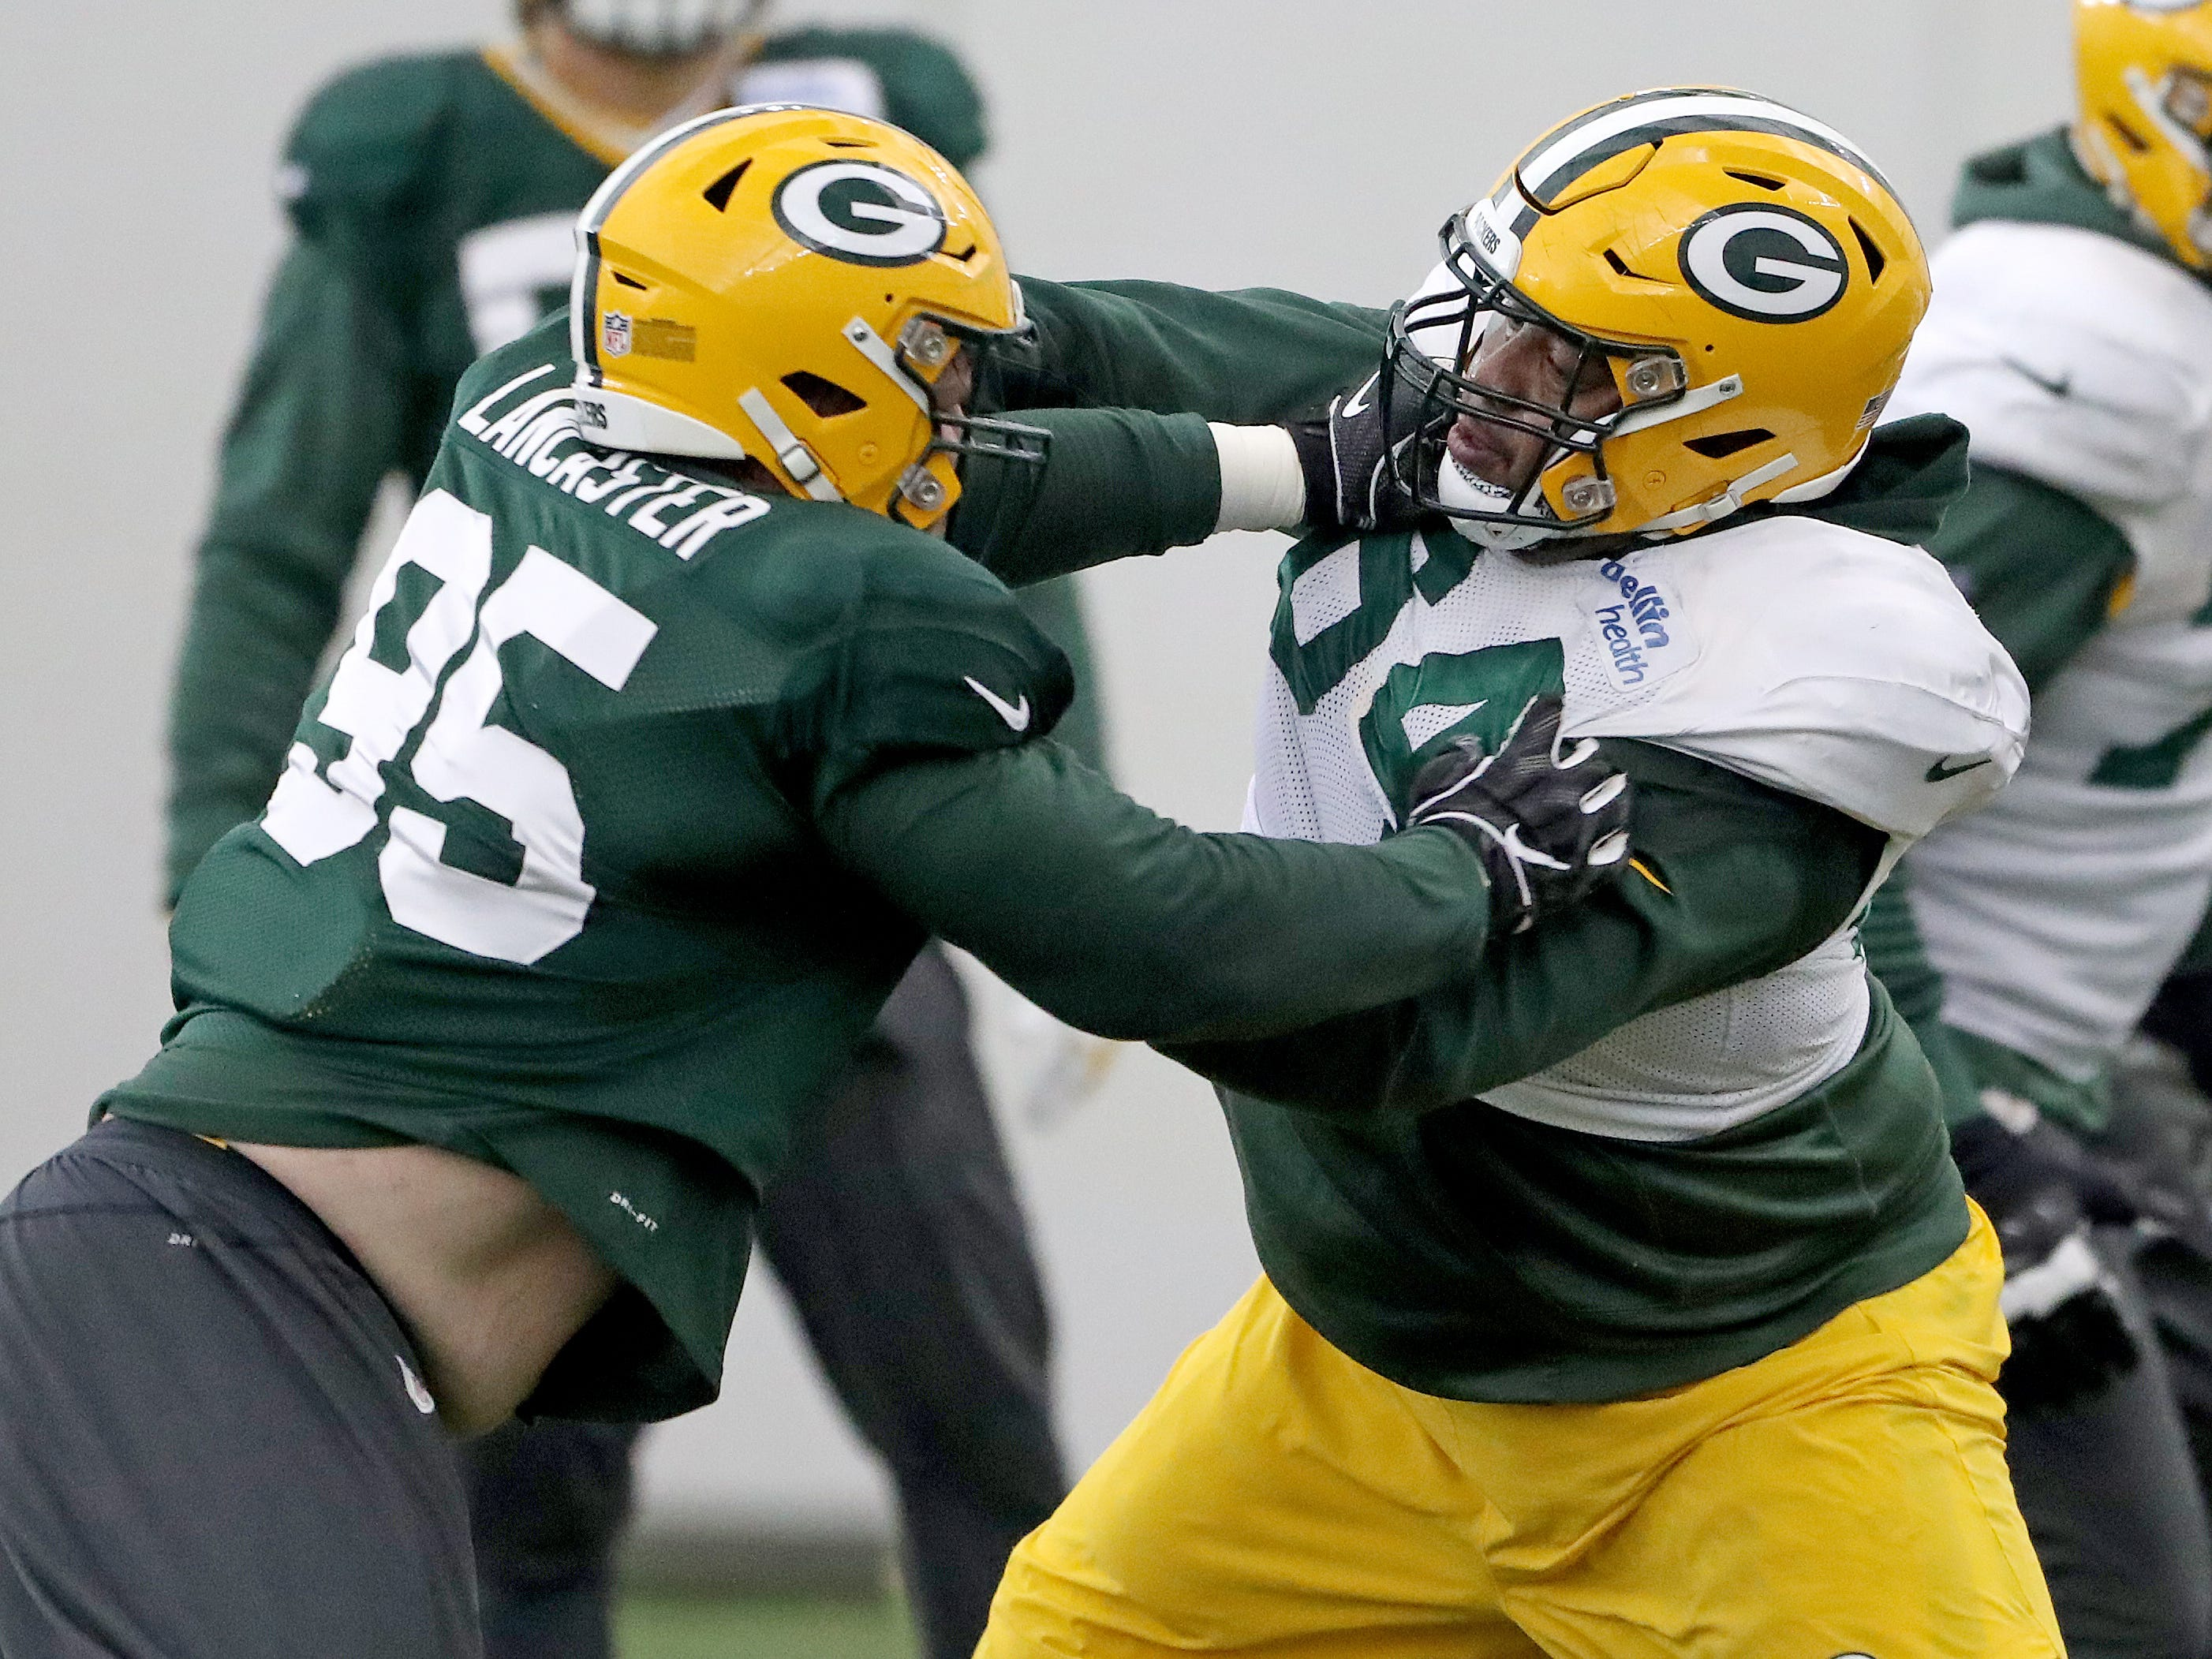 Green Bay Packers defensive tackle Tyler Lancaster (95) and offensive guard Justin McCray (64) during practice Thursday, December 6, 2018 inside the Don Hutson Center in Ashwaubenon, WIs.